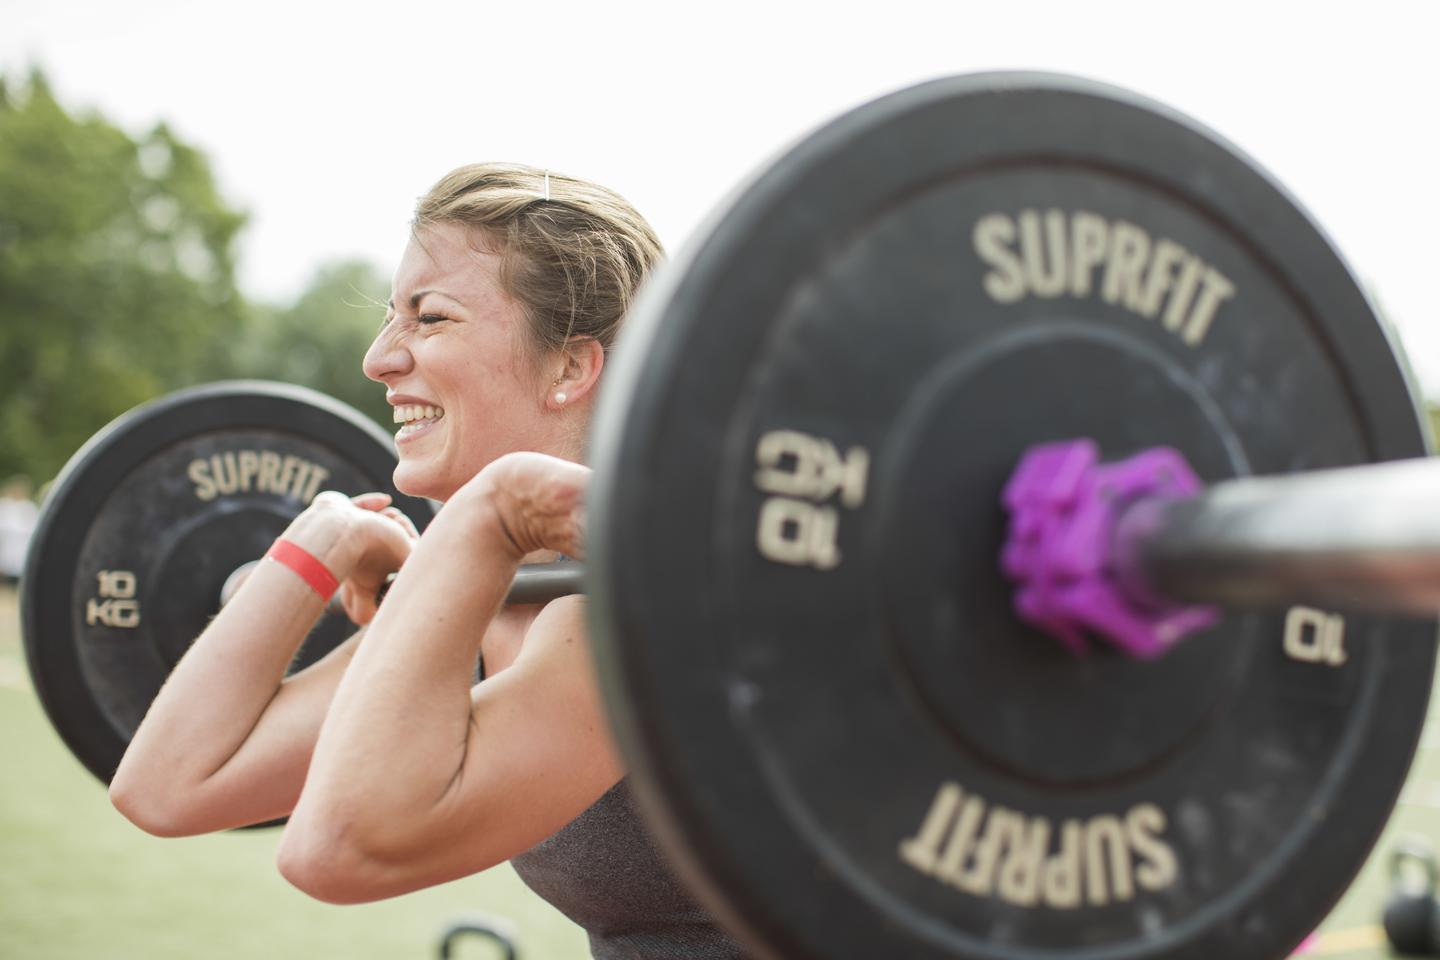 The Best Way to Avoid Back Pain? Lift Heavy Things